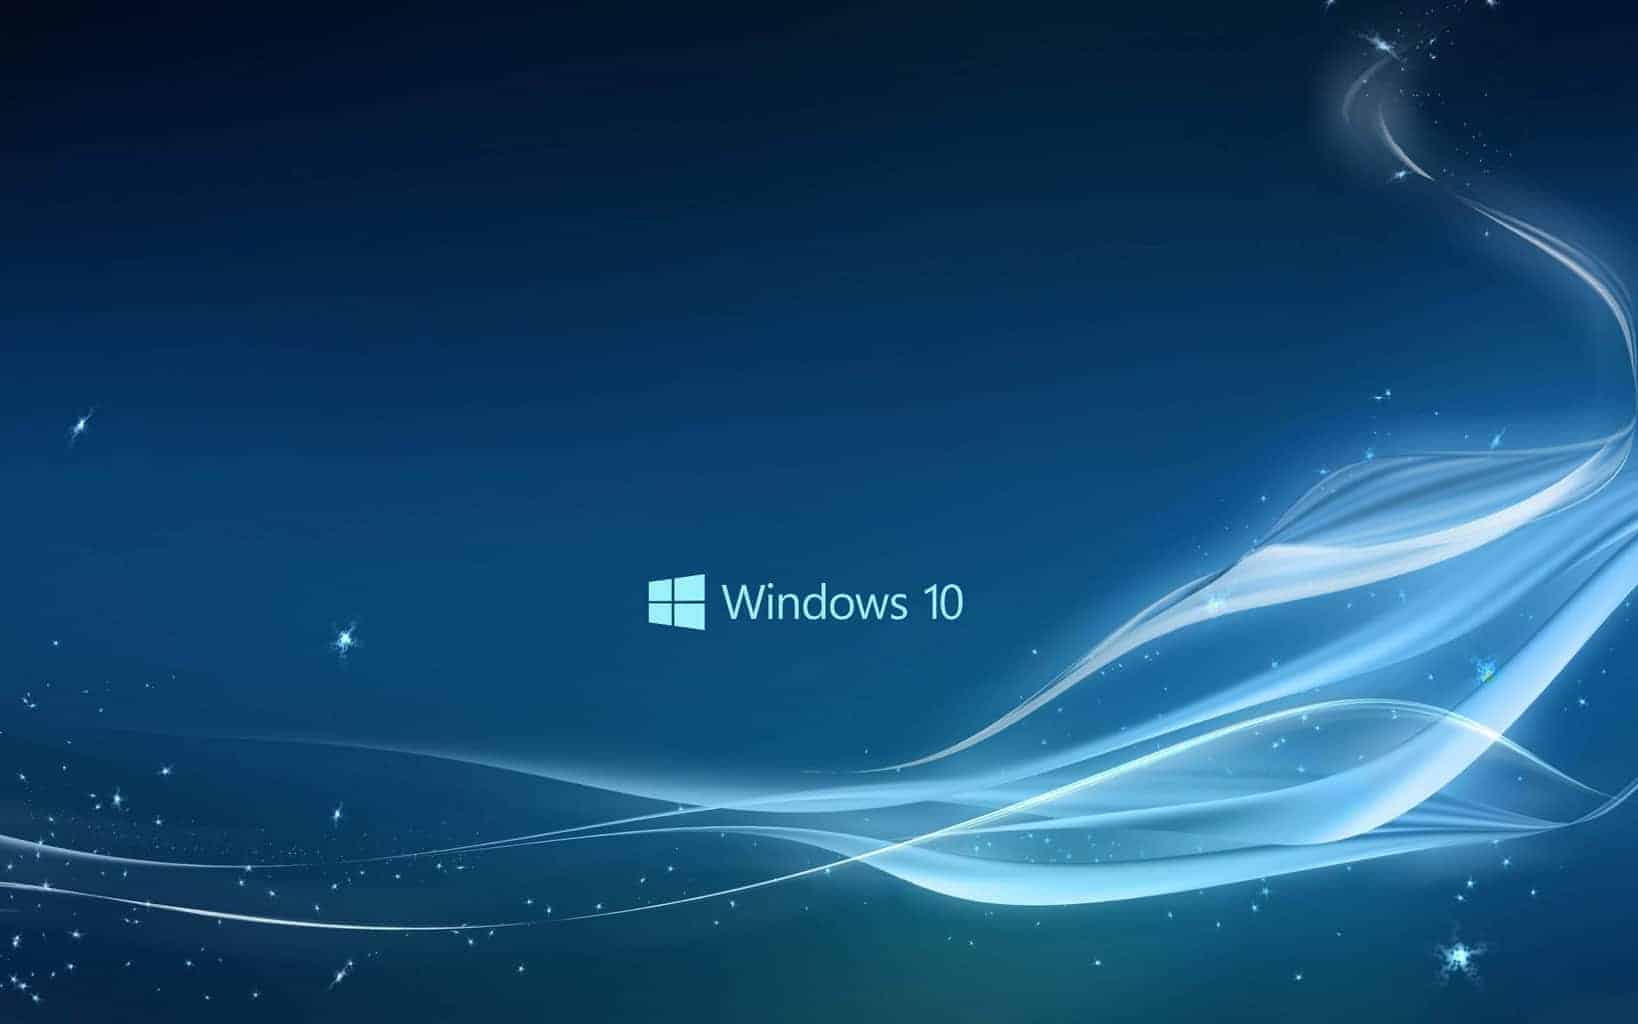 Art Abstract Windows 10 Wallpaper For Computer